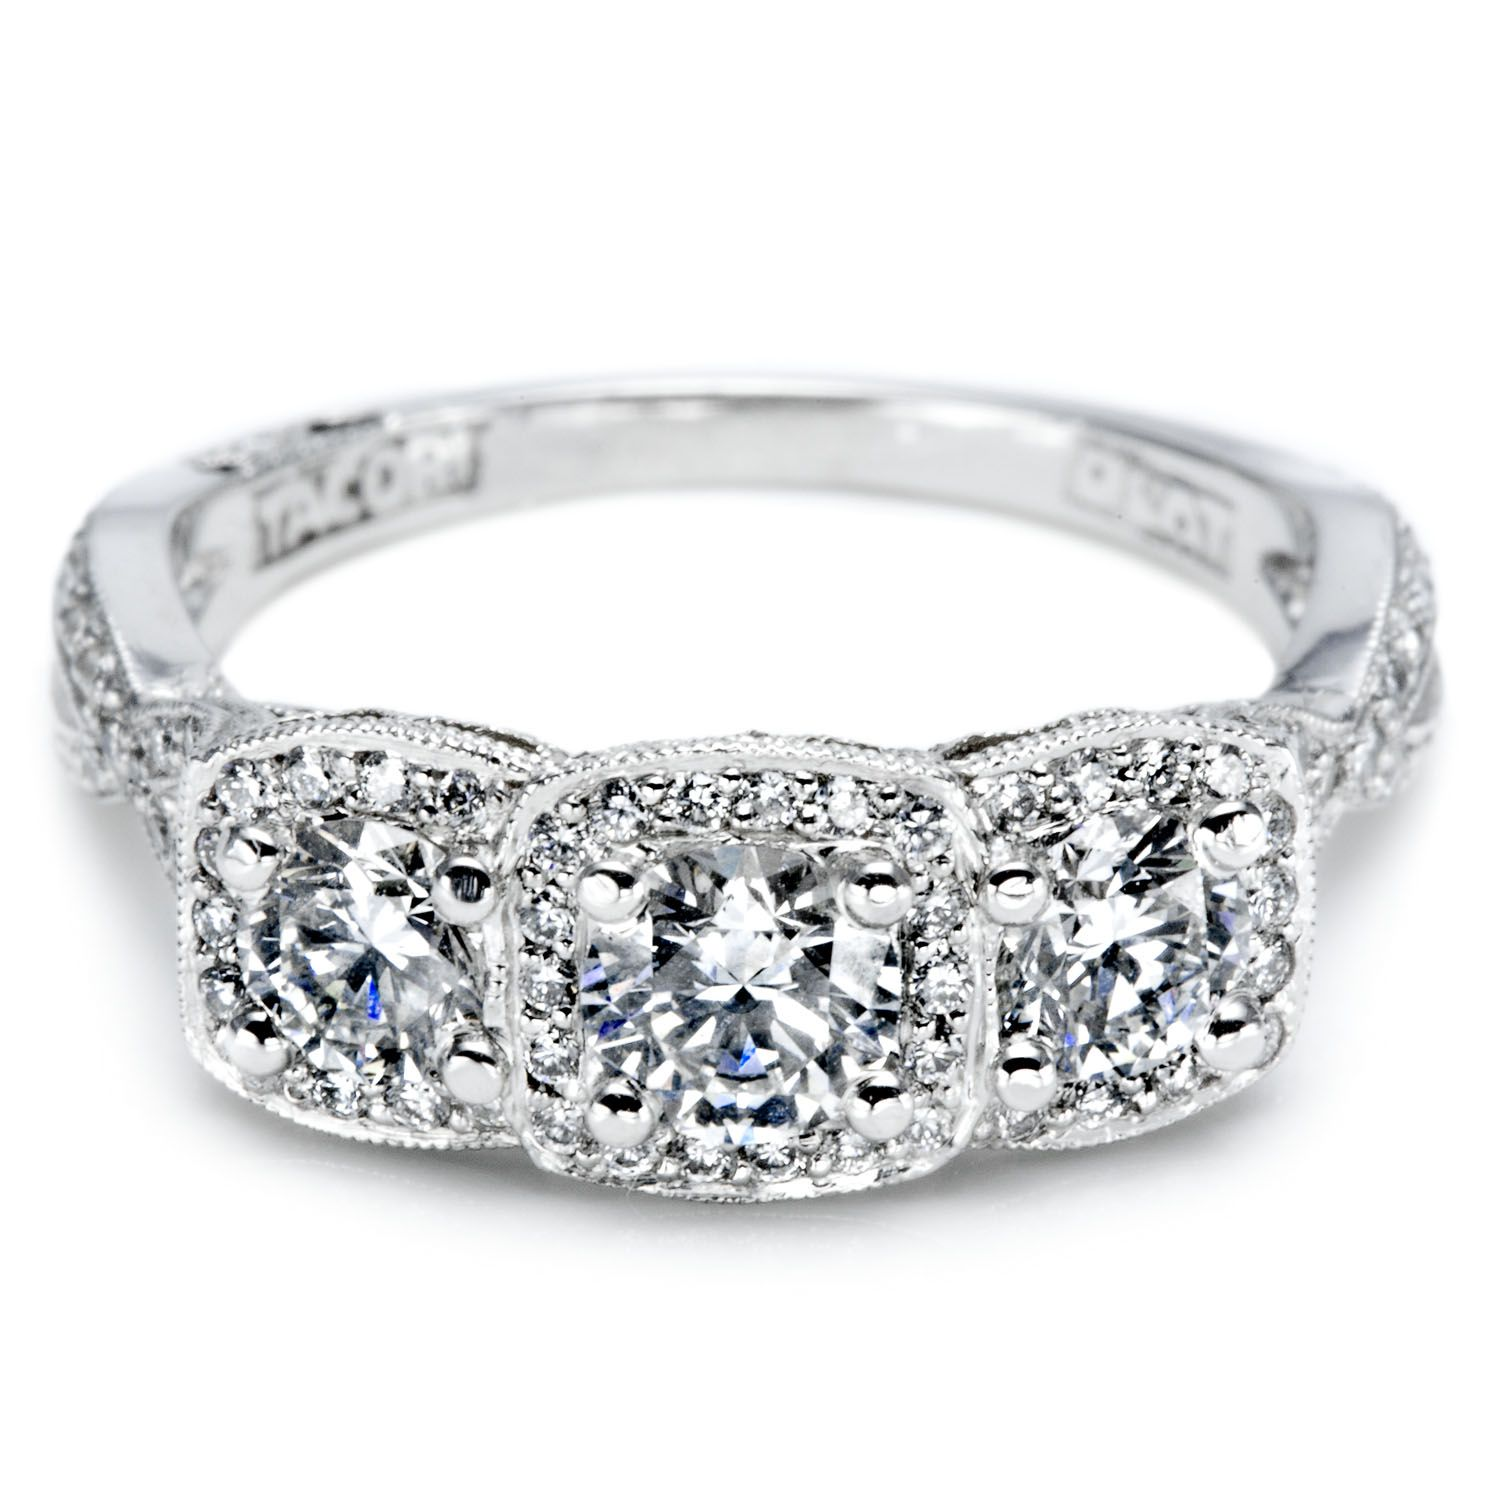 radiant bezel work favorite ideal a head kaplan star voted fan tiara prong diamonds surprise diamond pin lattice seen platinum open cut set lazare as engagement on fall features